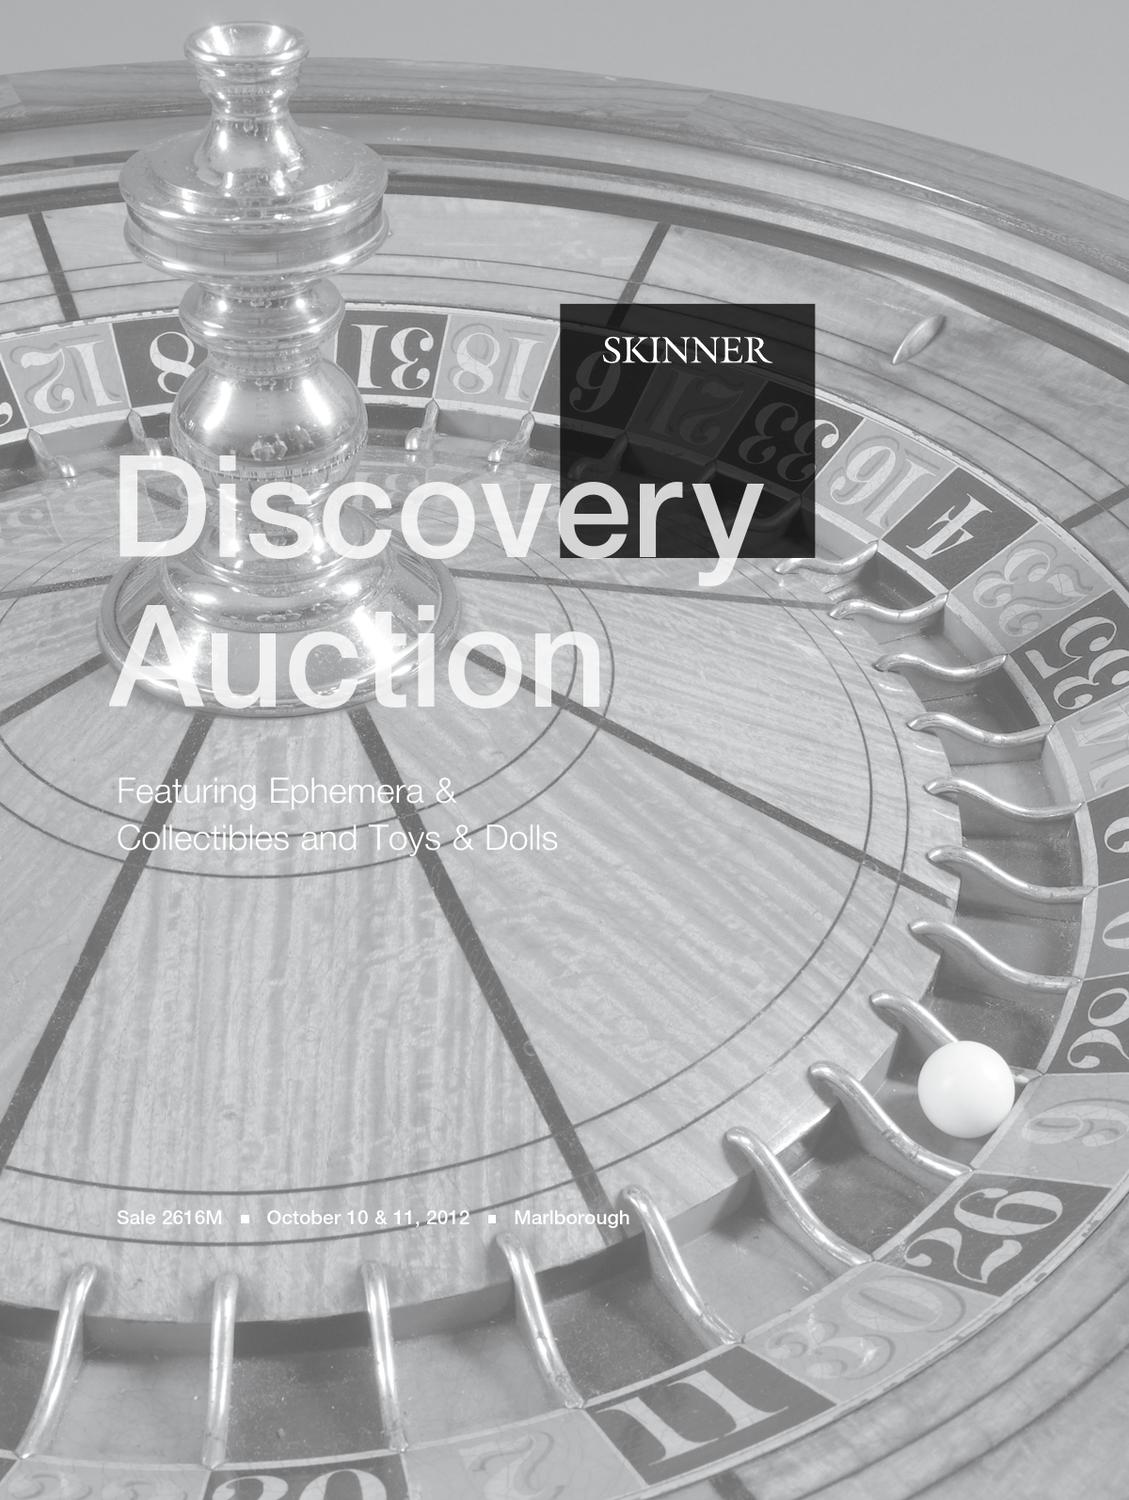 Discovery Featuring Toys Dolls Ephemera Collectibles Skinner Auction 2616m By Skinner Inc Issuu